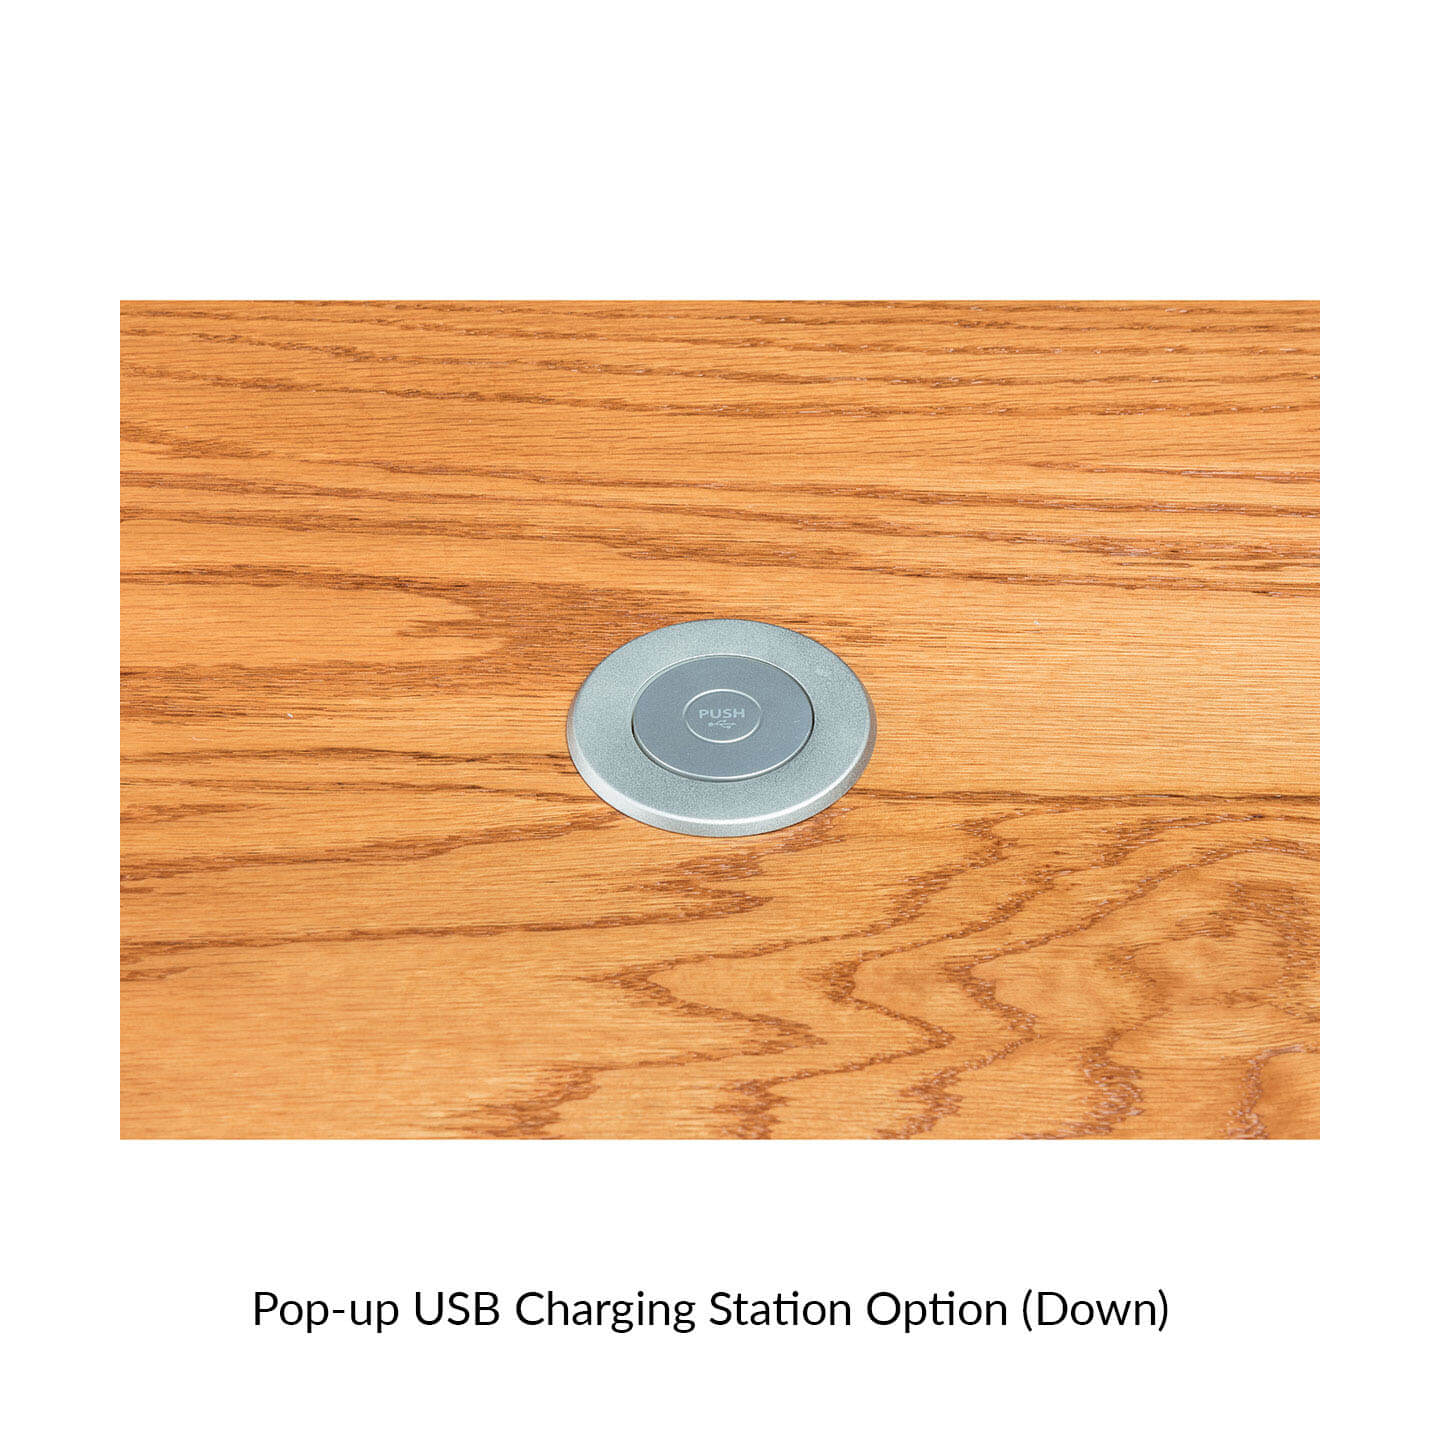 6.0-pop-up-usb-charging-station-option-down-.jpg